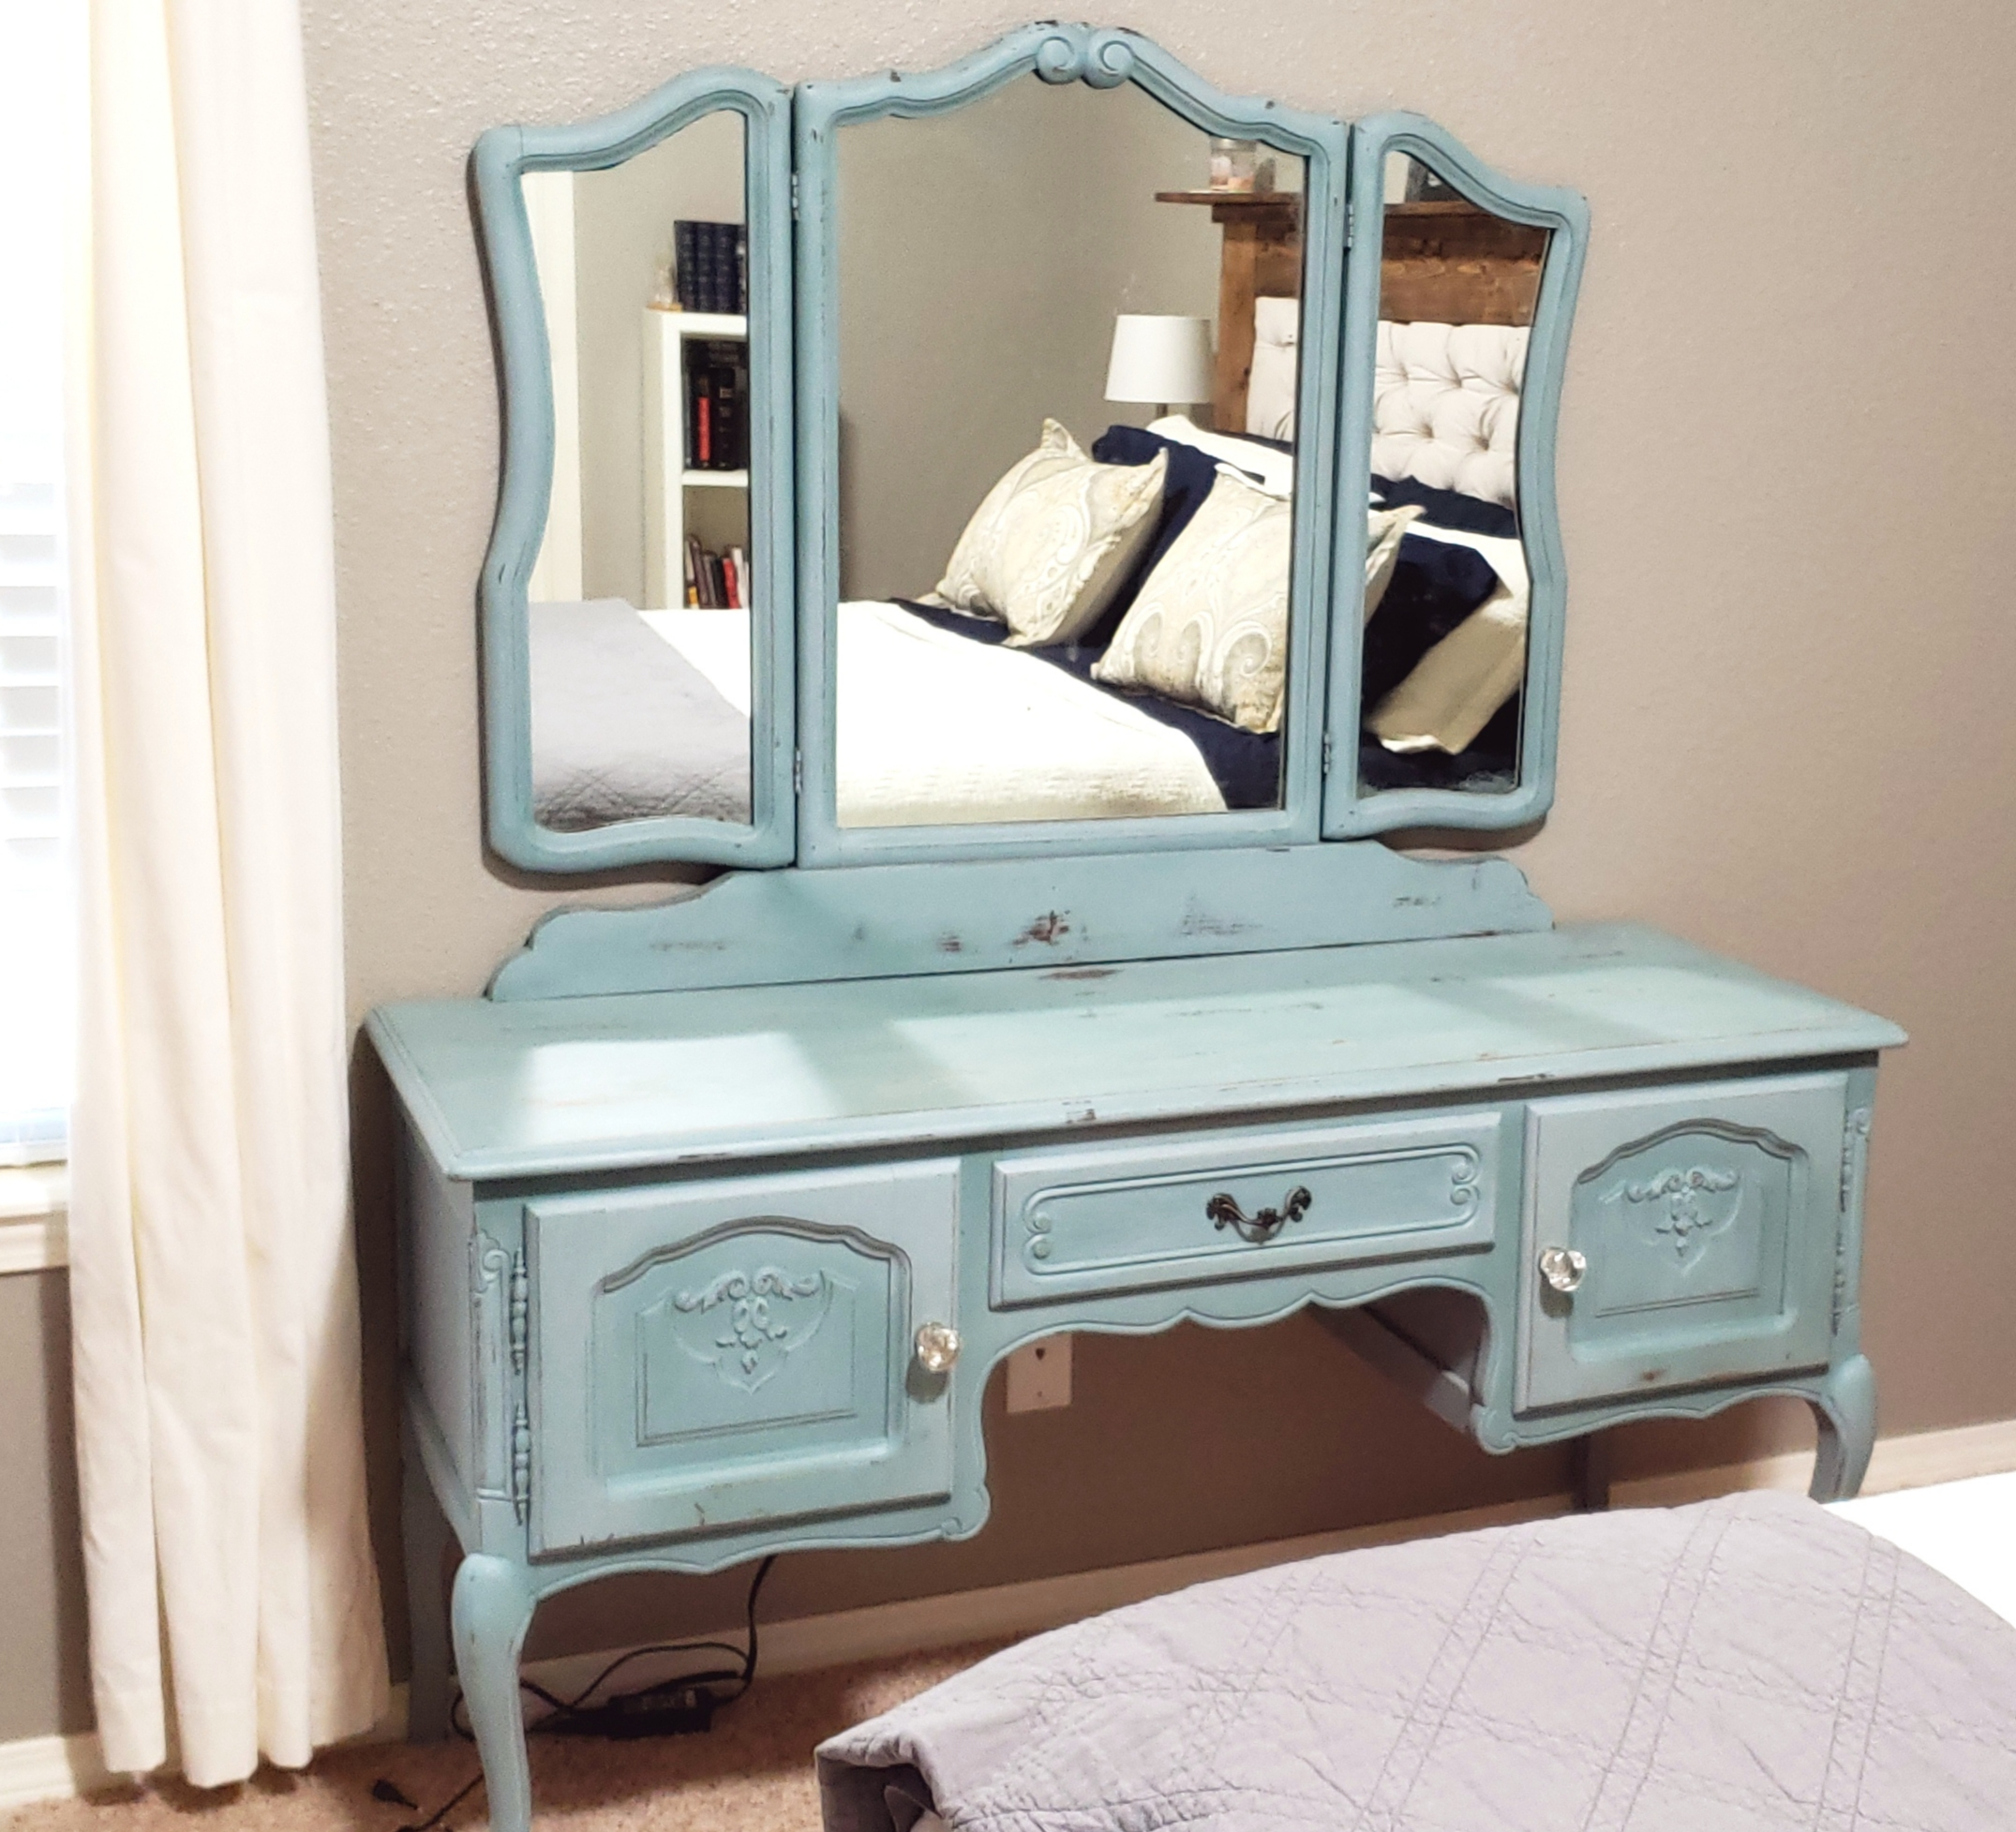 This is the antique vanity I use as my desk. I keep my budget binder here.